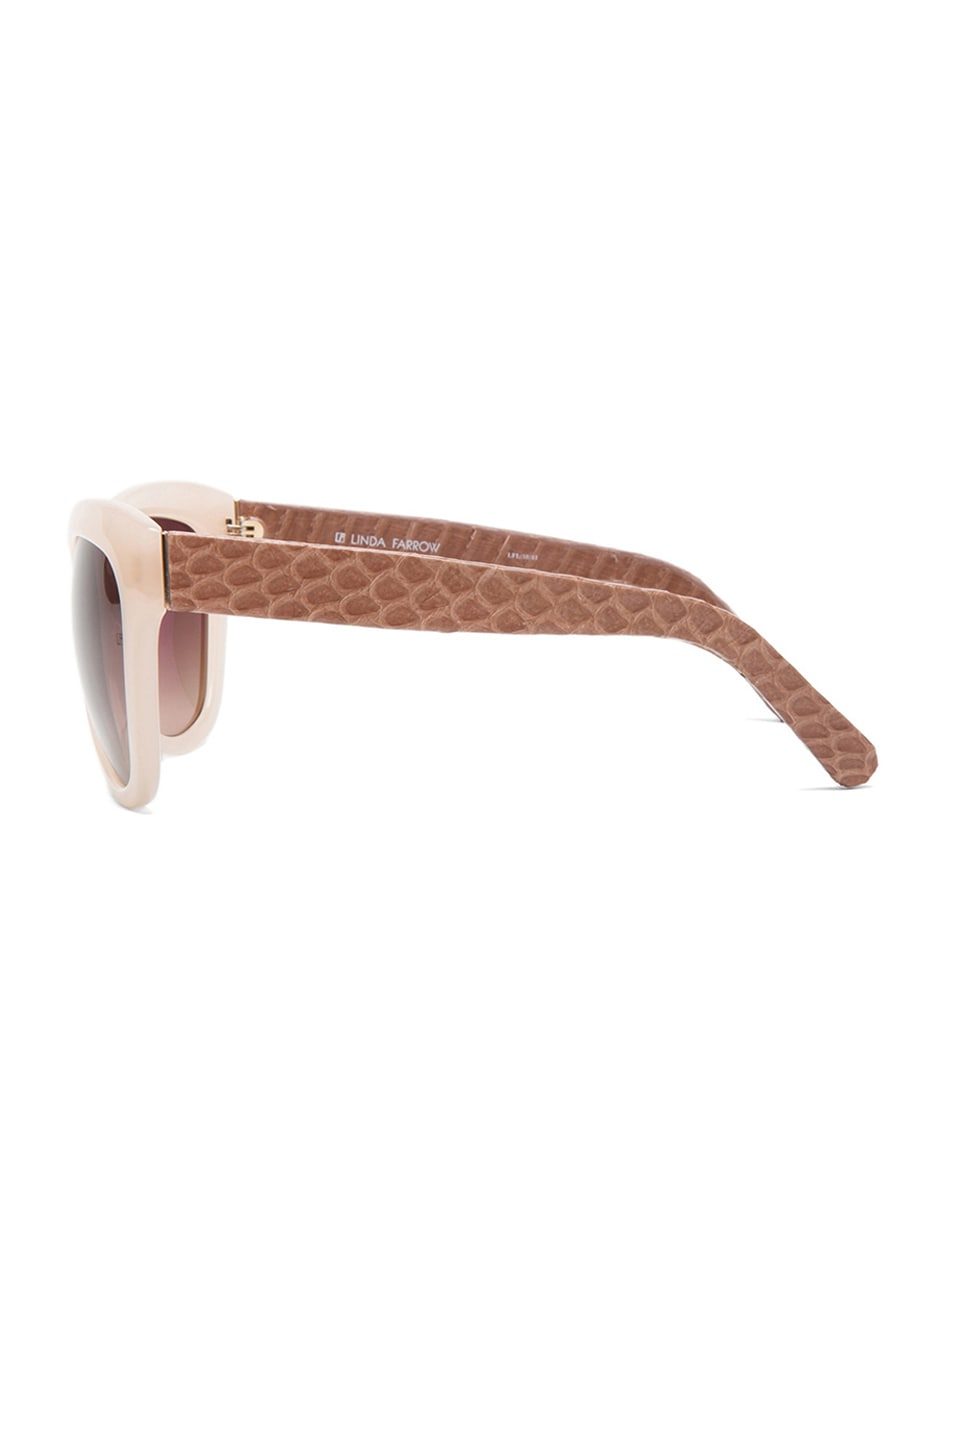 Image 3 of Linda Farrow Curved Square Polarized Sunglasses in Taupe